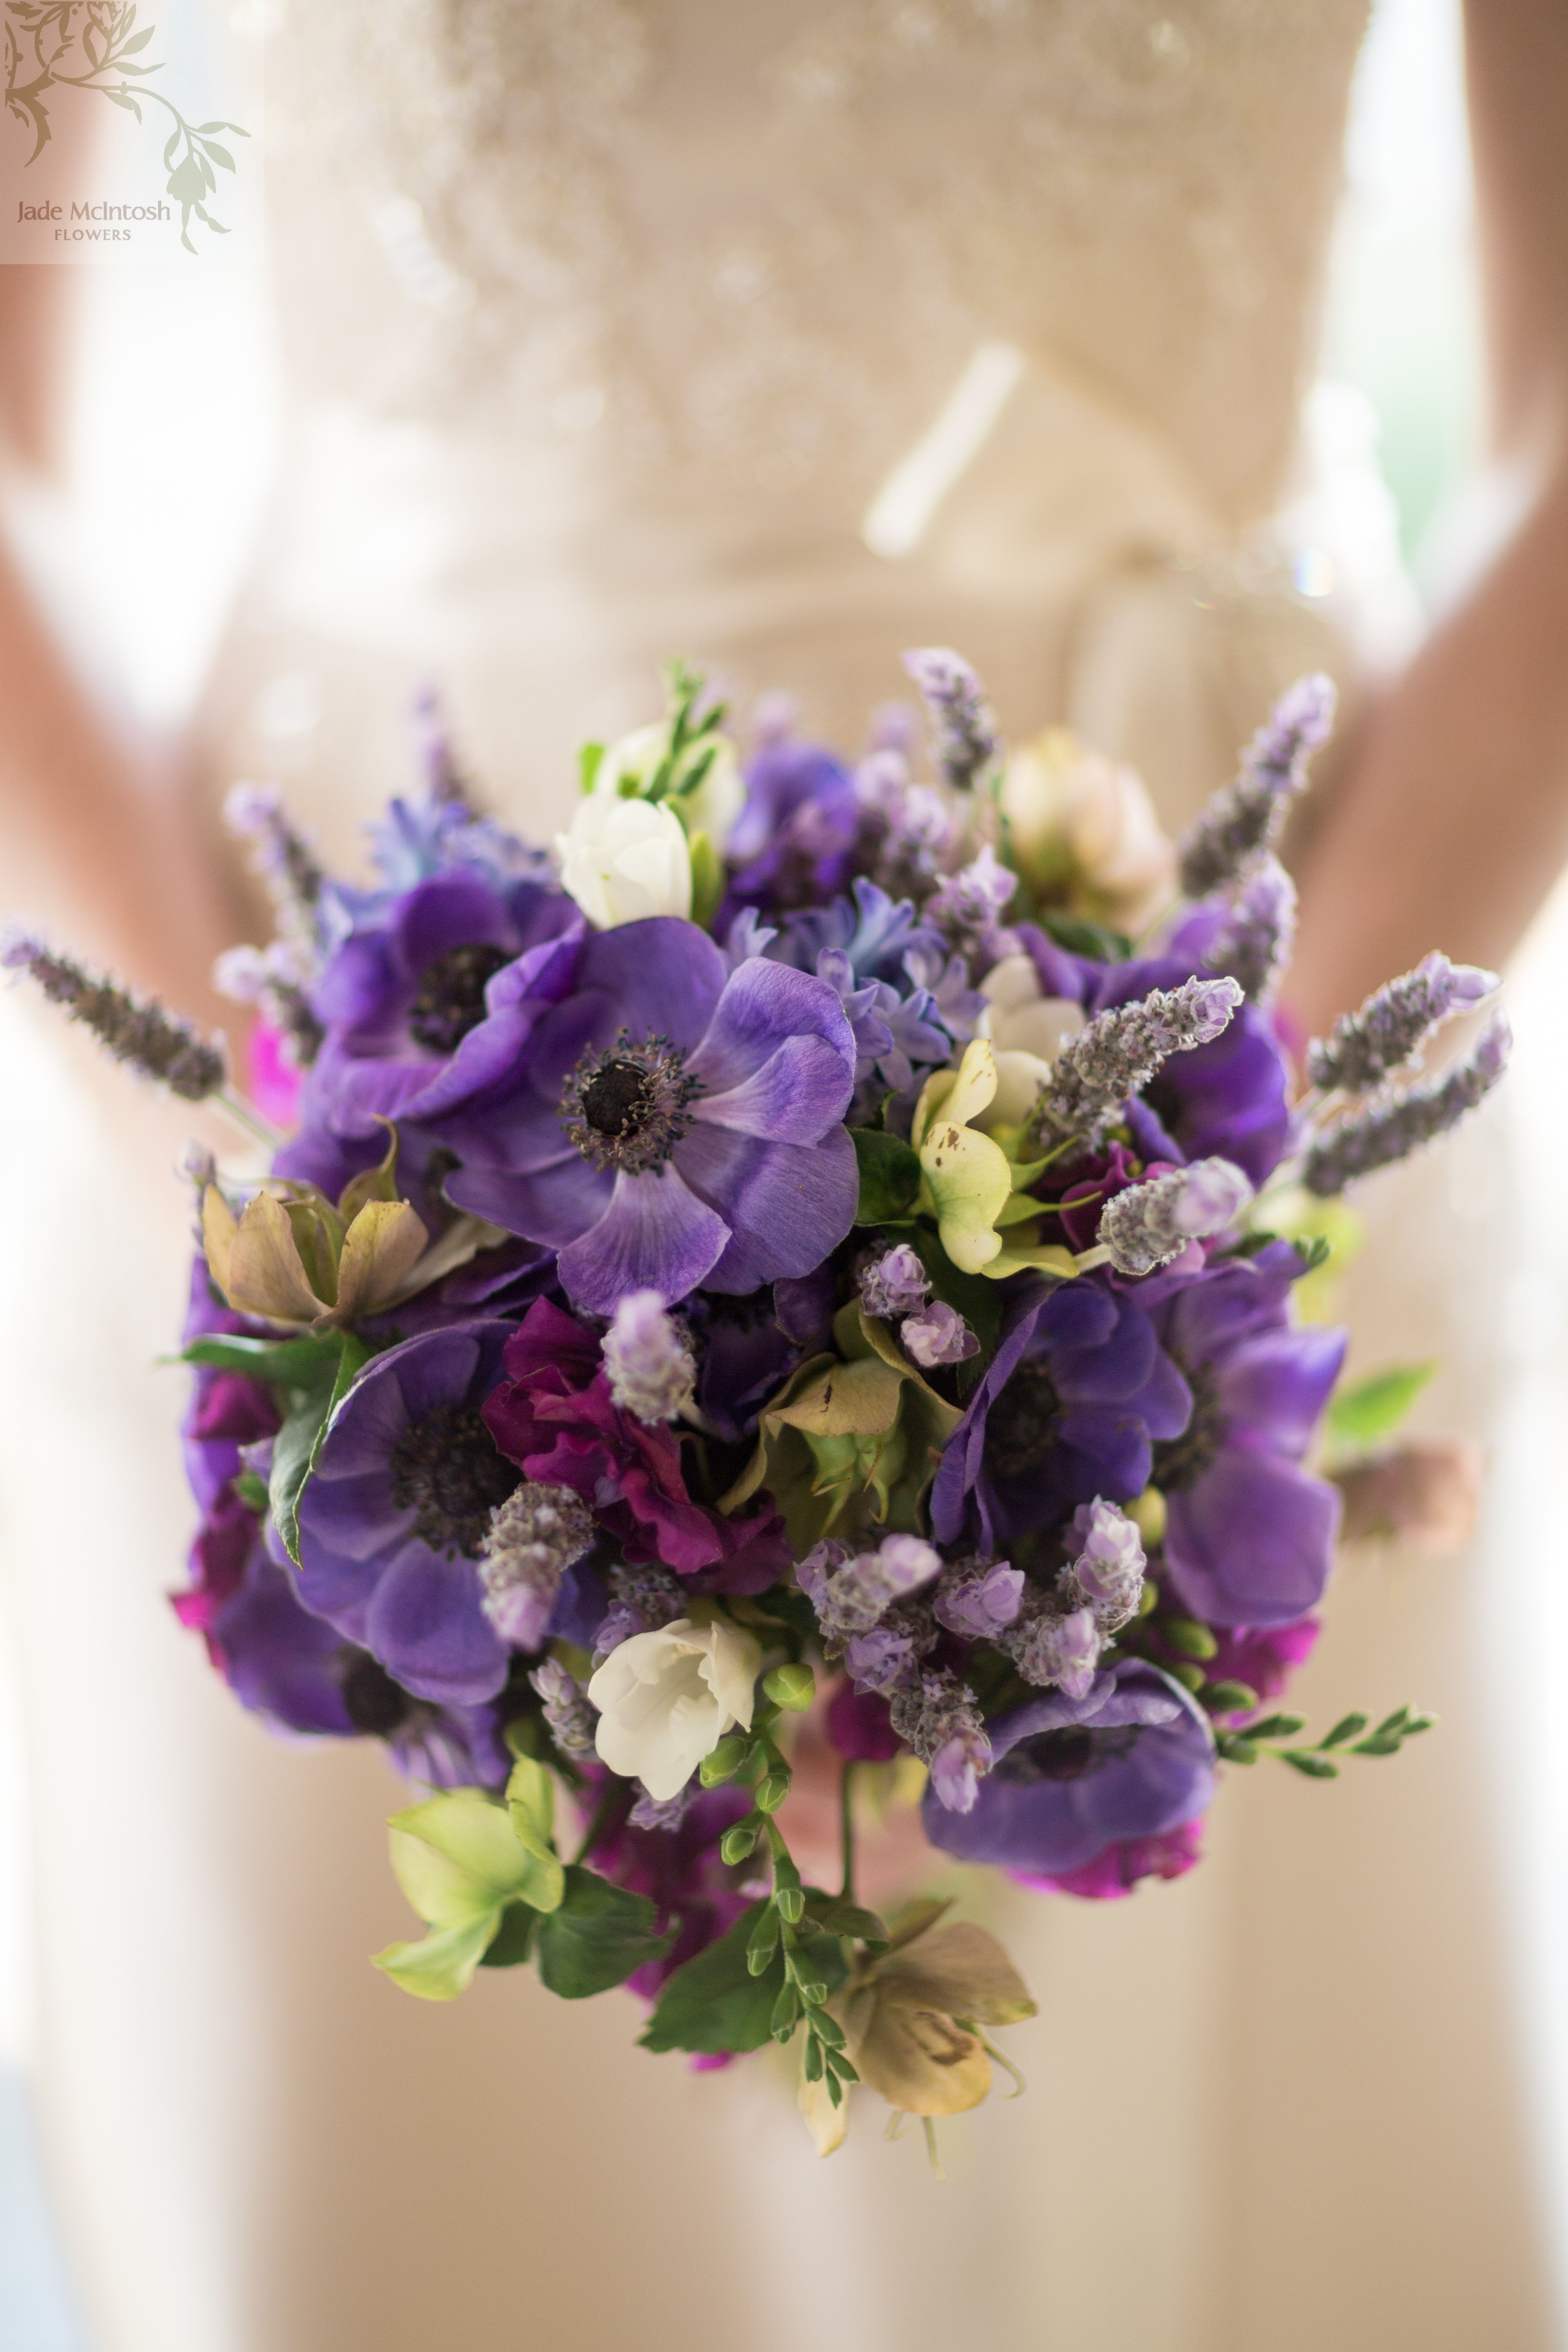 Wedding Flowers Jade McIntosh Flowers Hunter Valley Newcastle